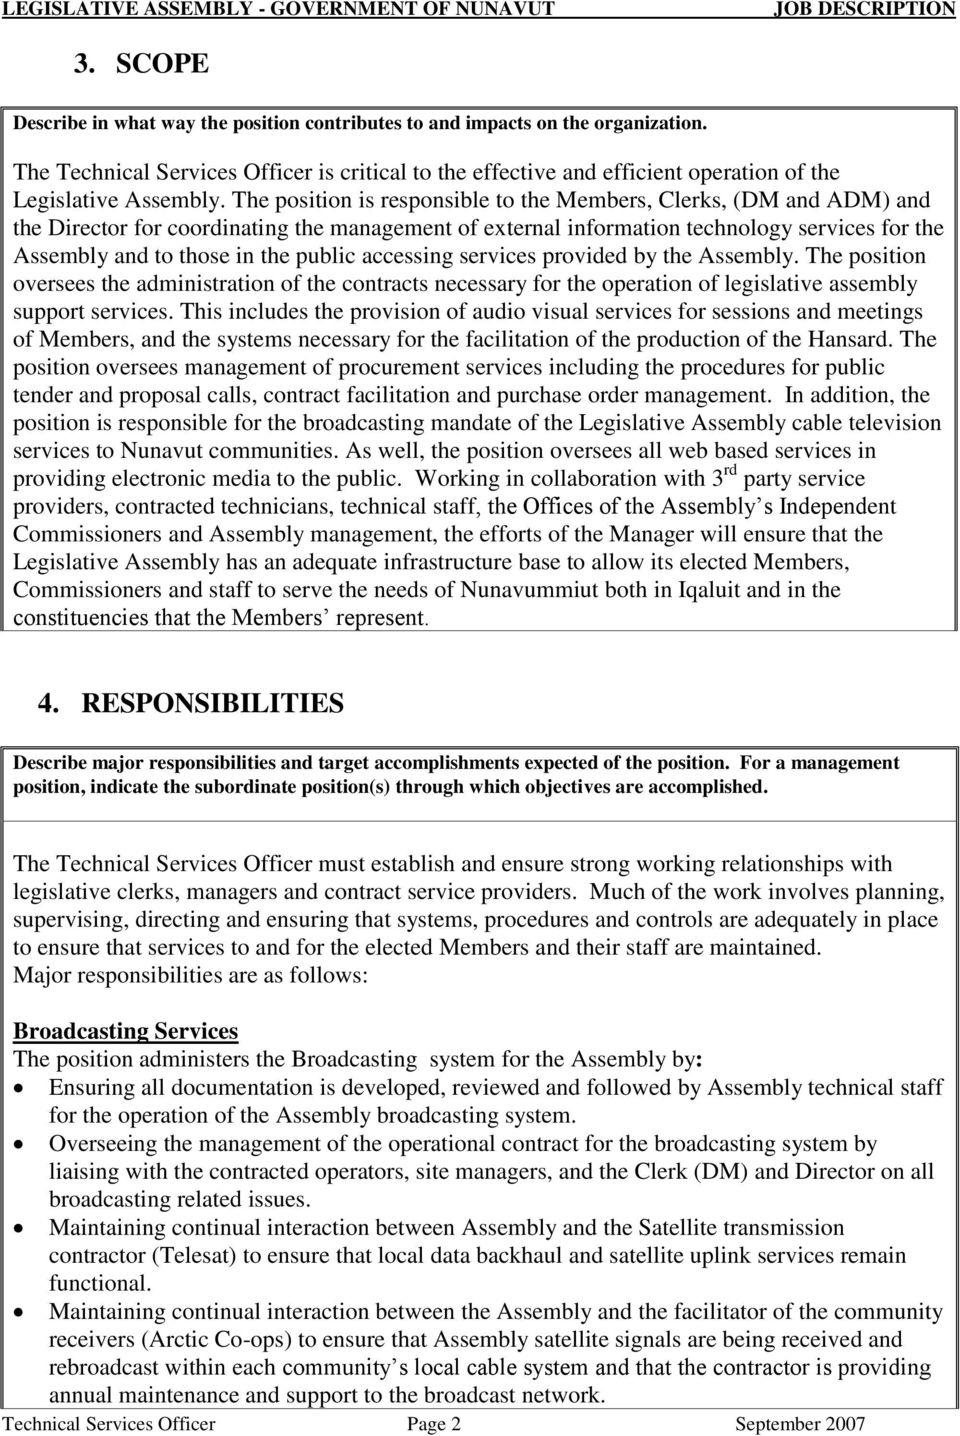 The position is responsible to the Members, Clerks, (DM and ADM) and the Director for coordinating the management of external information technology services for the Assembly and to those in the